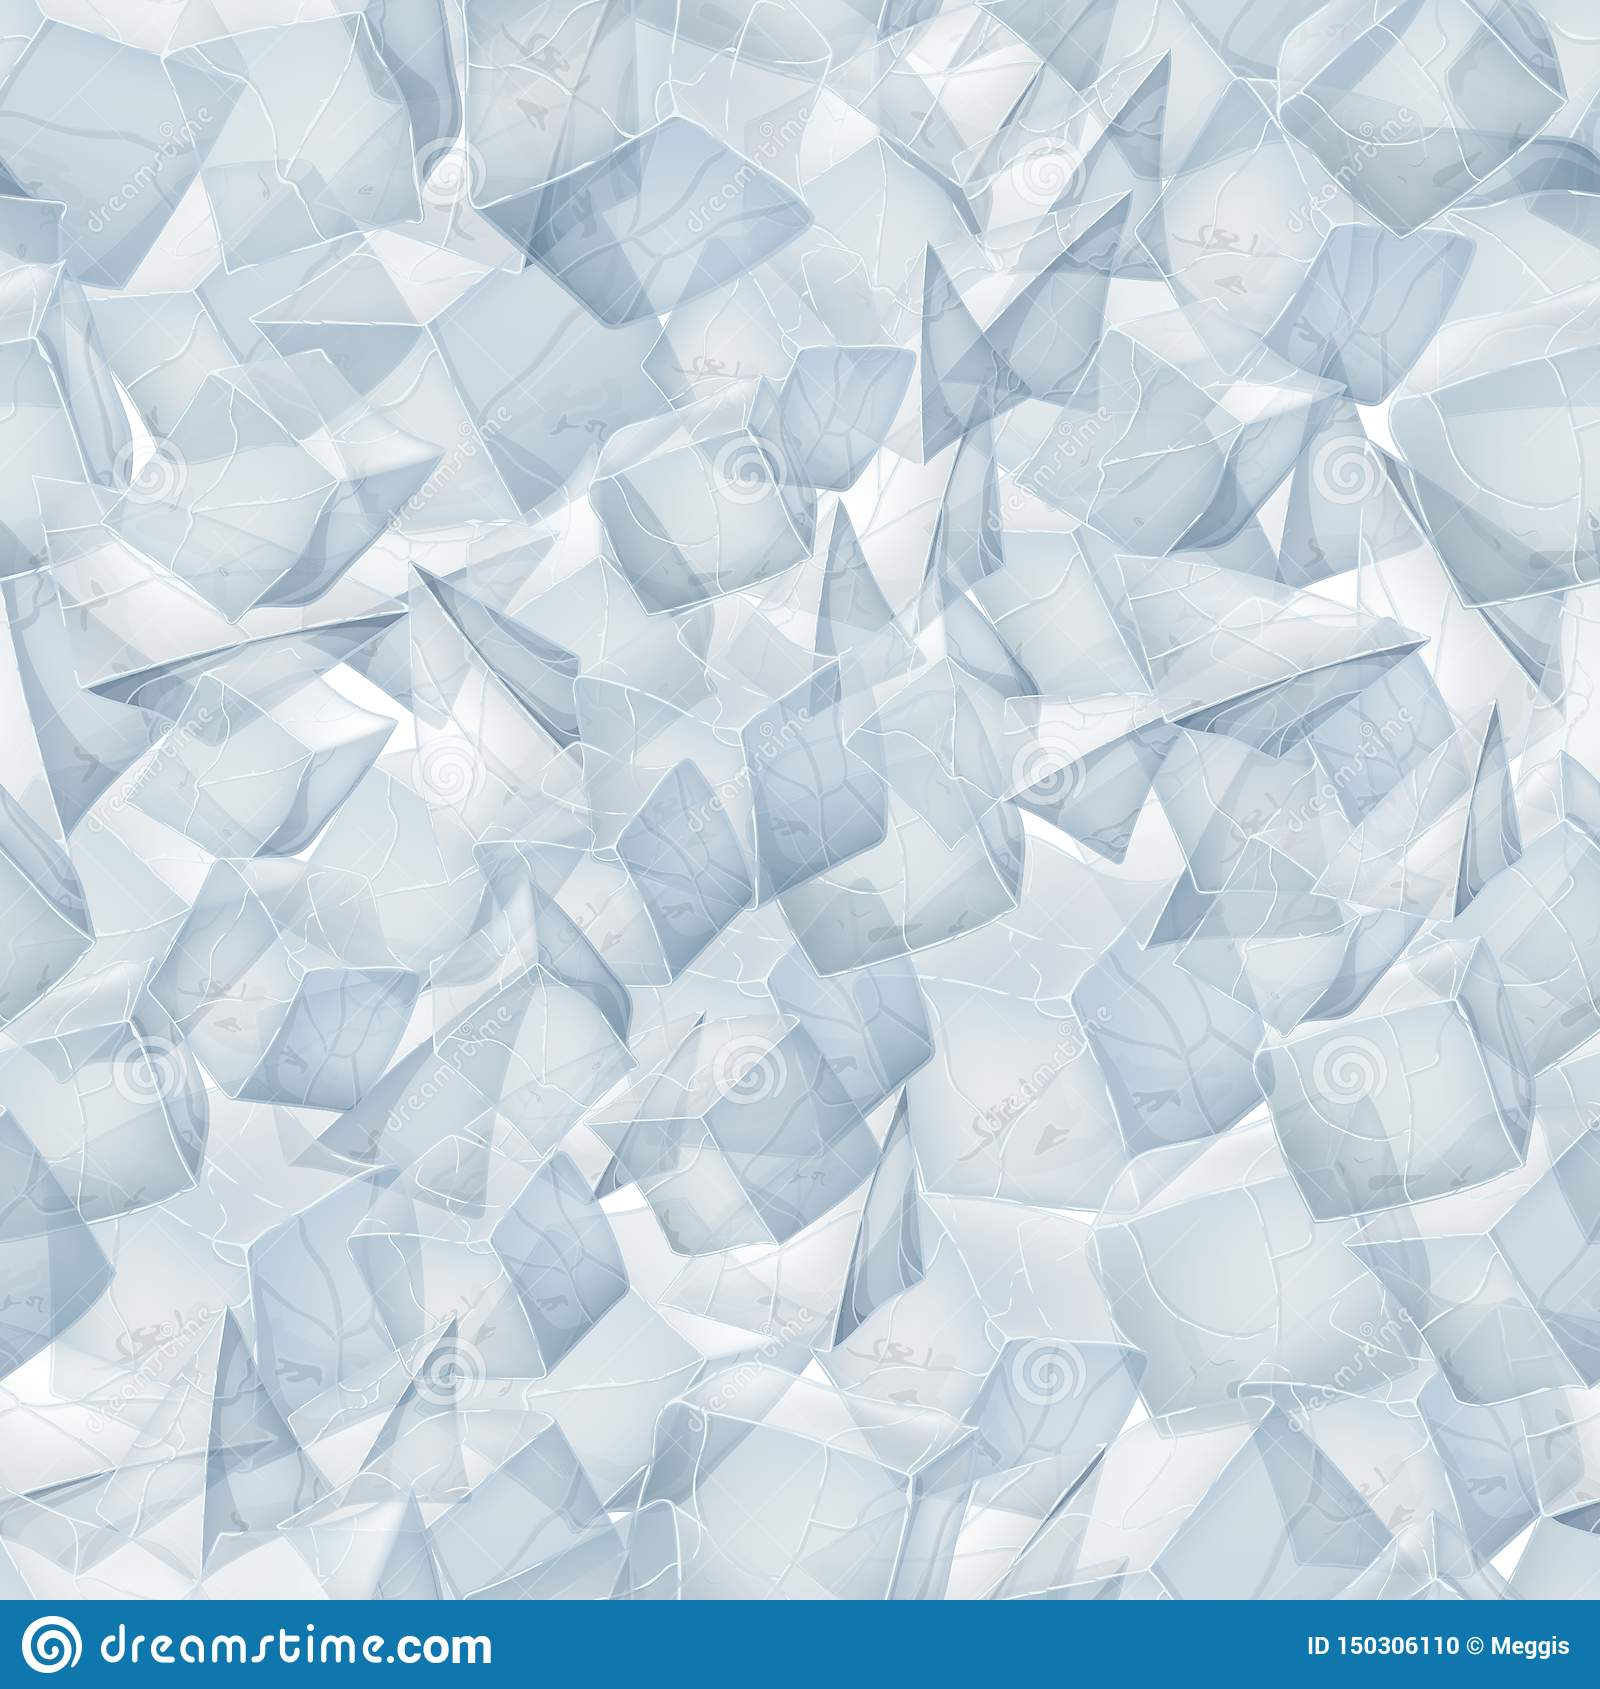 ice texture stock vector illustration of pattern reflect 150306110 https www dreamstime com ice texture seamless pattern background vector illustration winter design ice texture image150306110